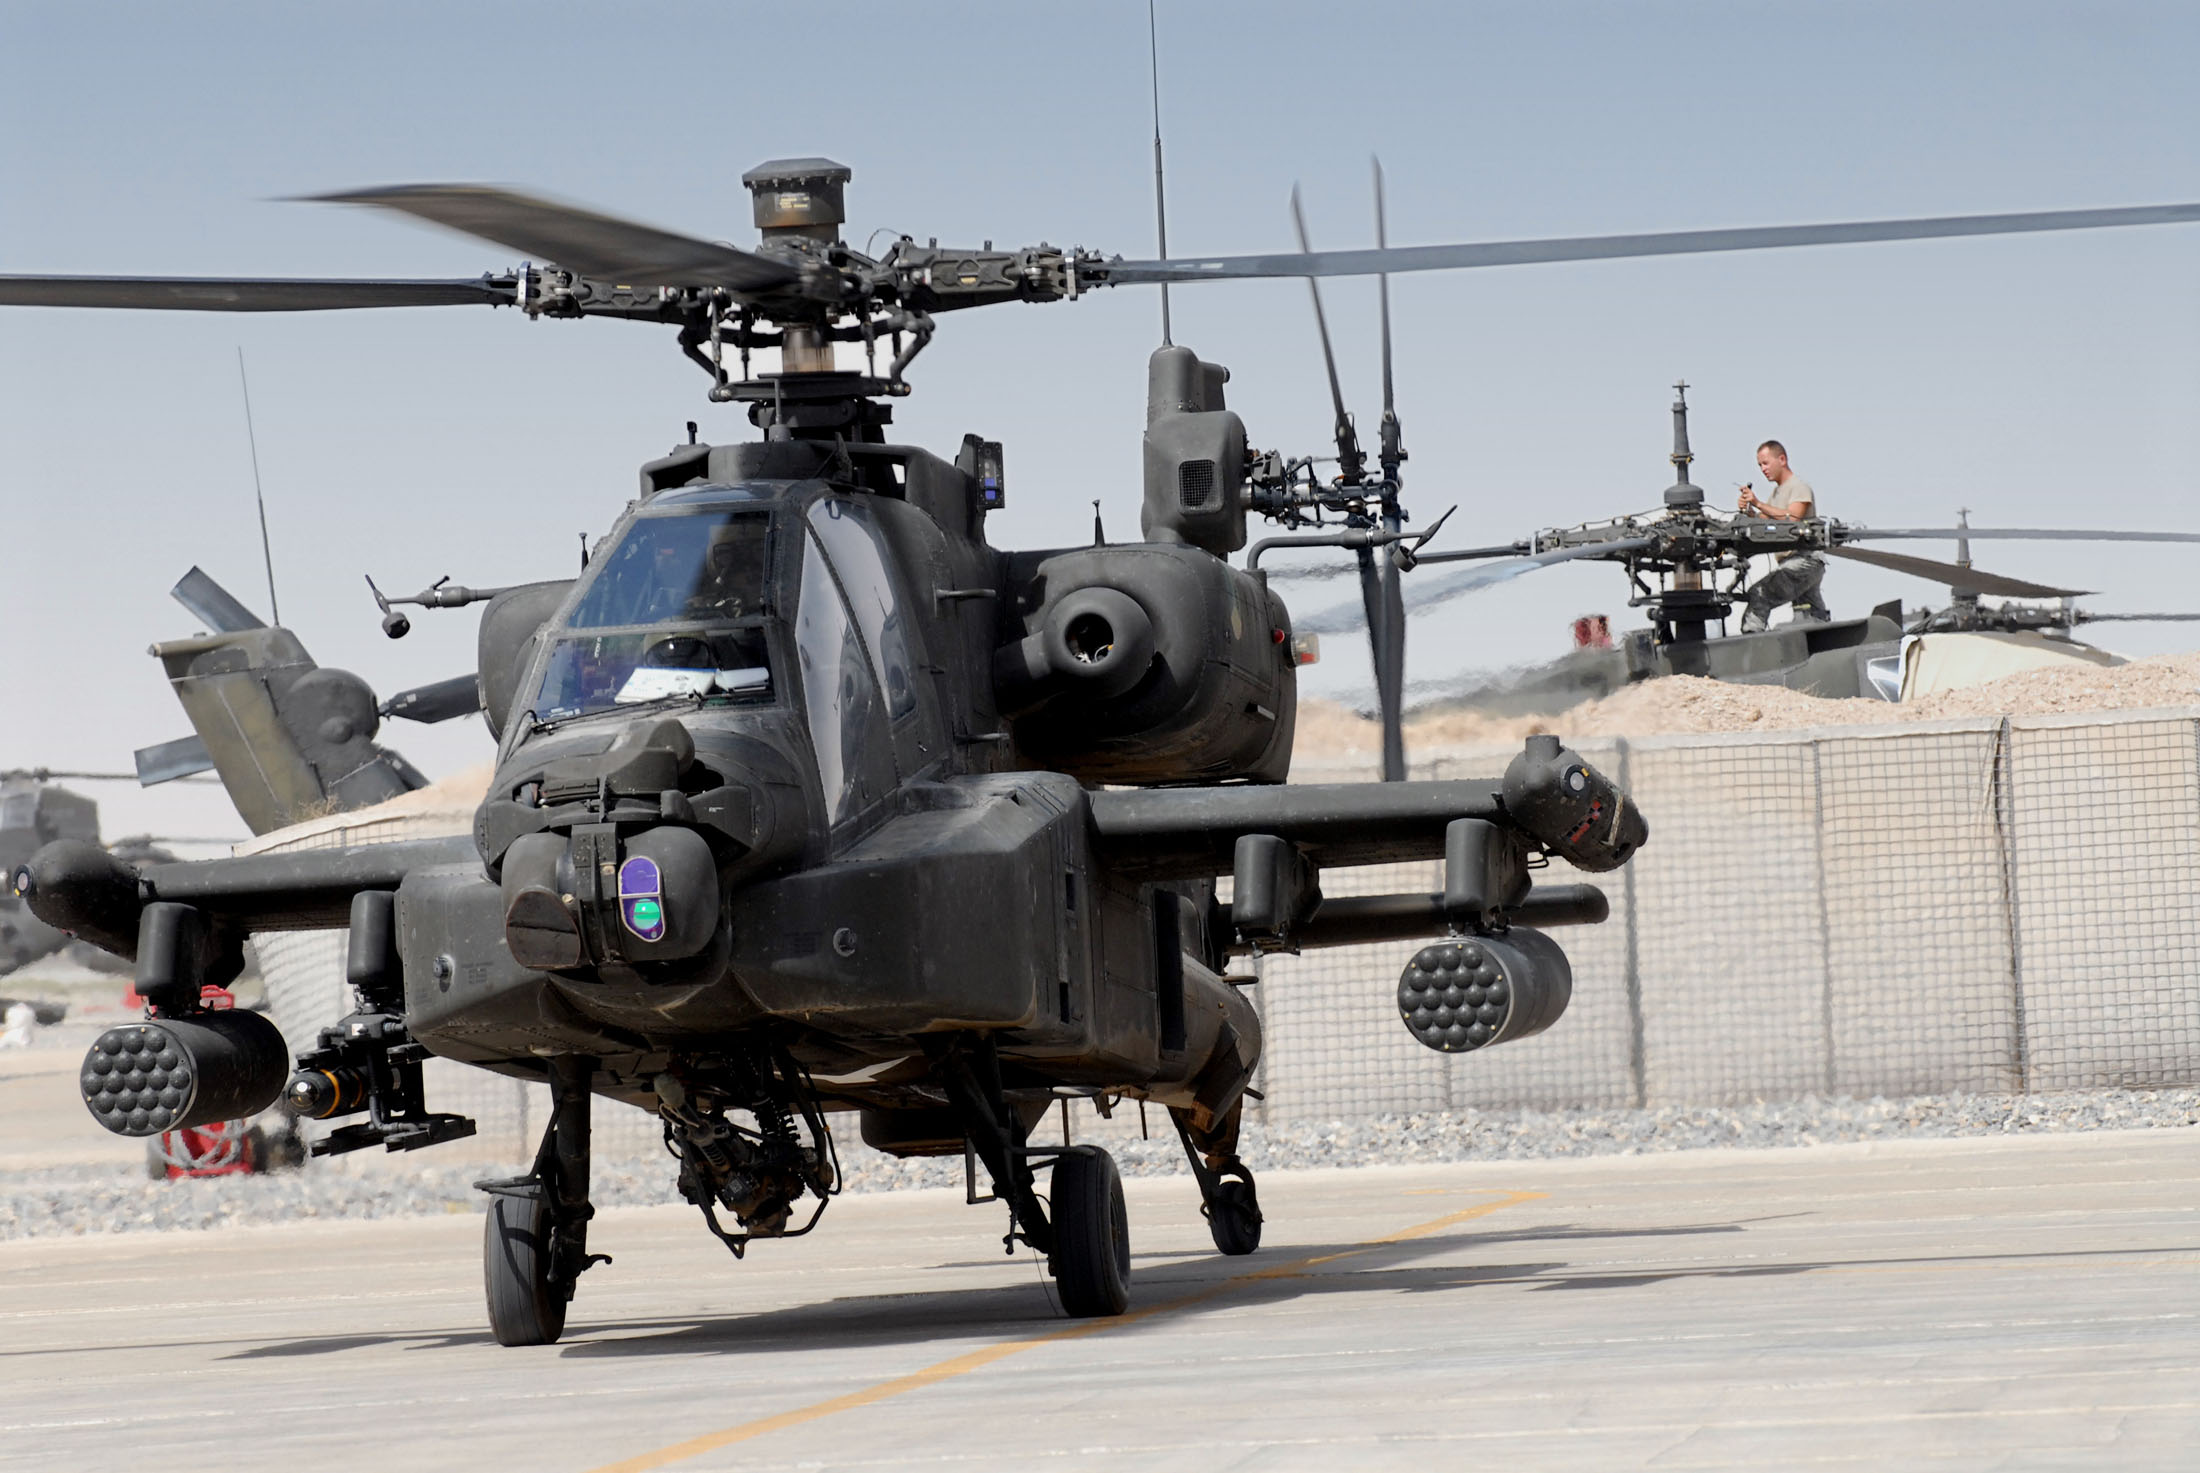 apache helicopter hd wallpaper with M060720c on Apache Helicopter Wallpaper moreover Cobra Helicopter Desktop Background Wallpapers together with Ah 64 Pics additionally Helicopter Details moreover Tiger Tank Wallpaper Photos.